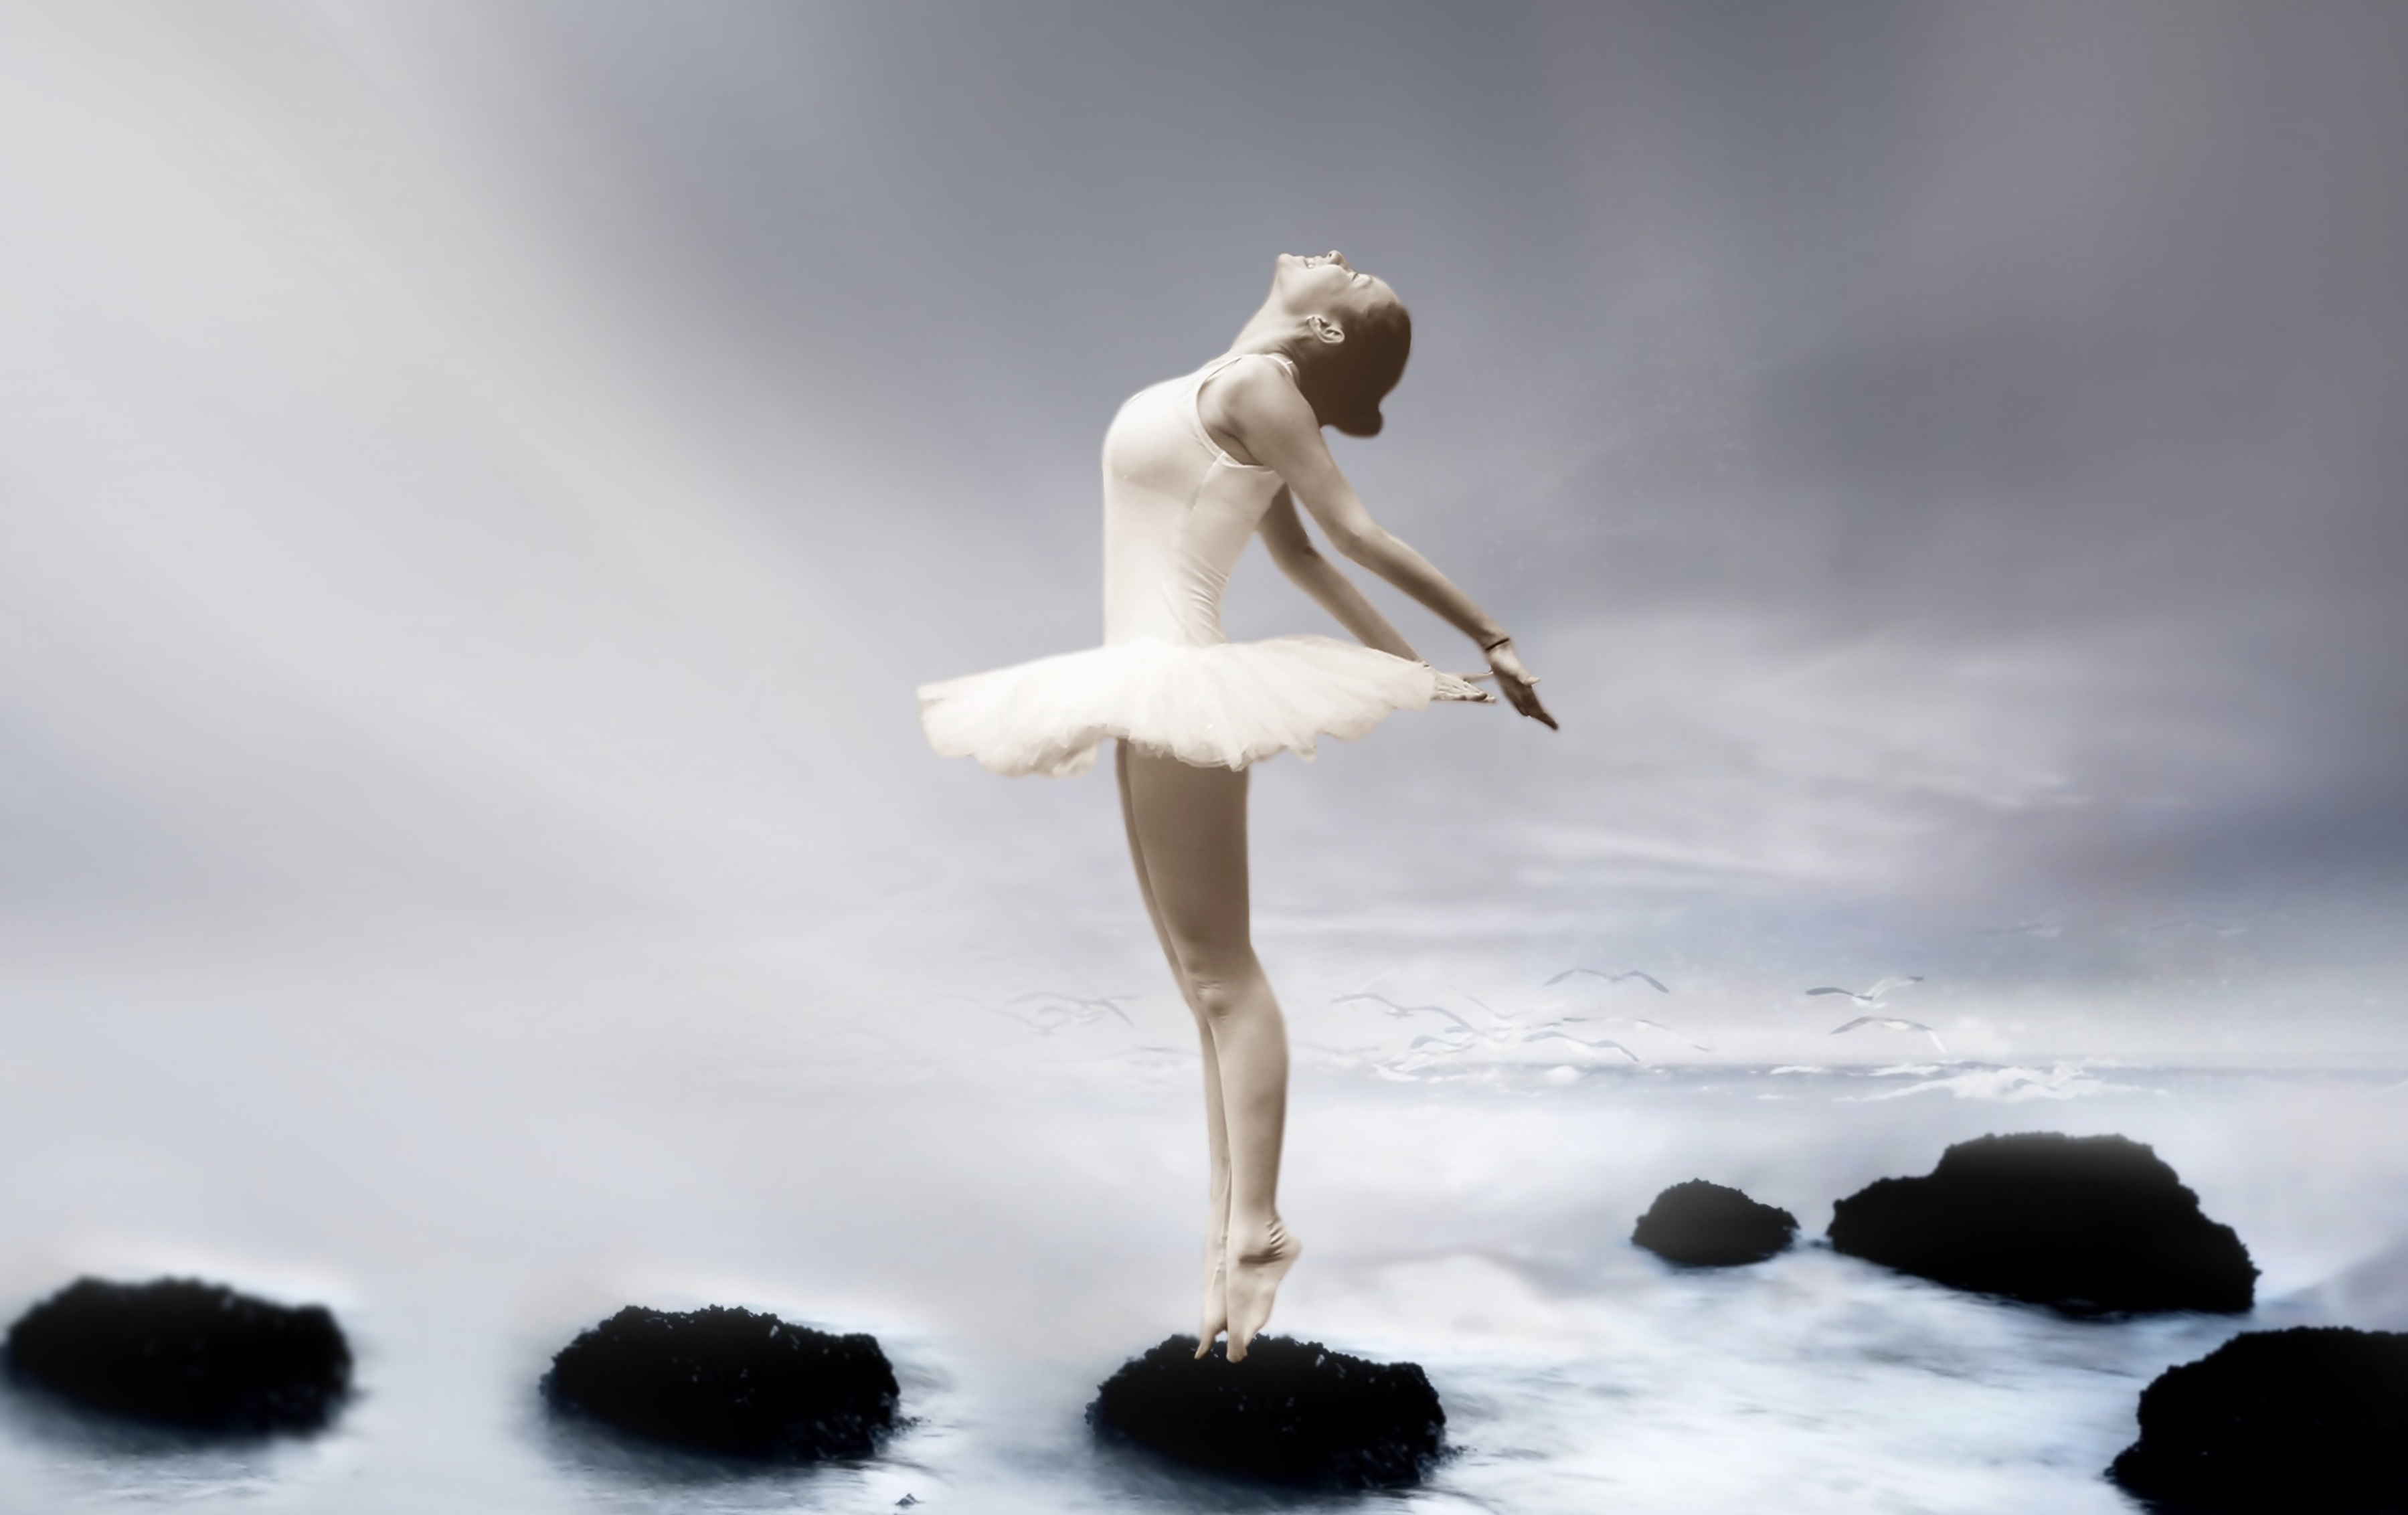 Ballet Hd Wallpaper Background Image 3598x2264 Id 940980 Wallpaper Abyss